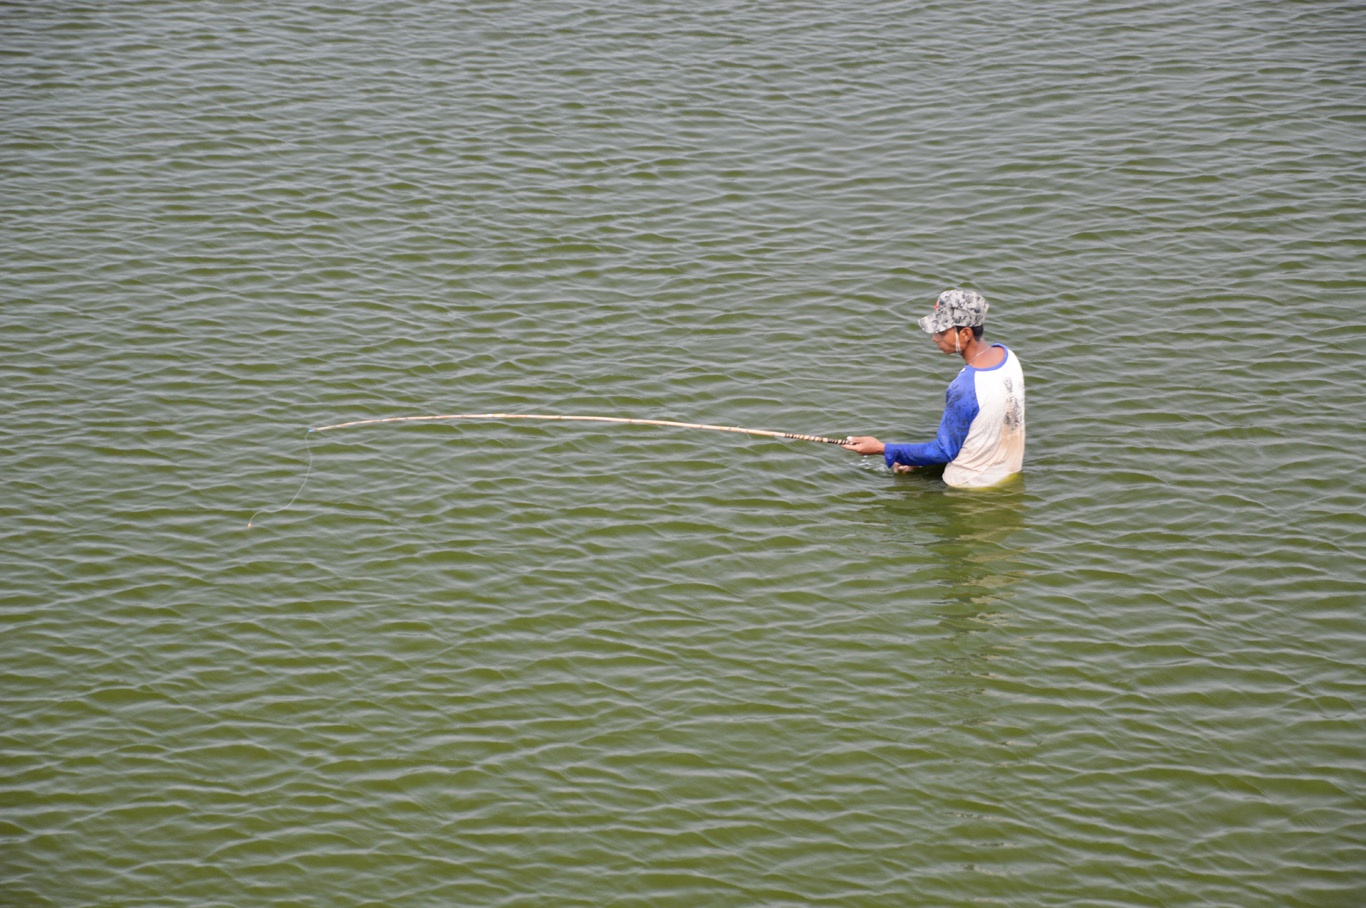 I'm not sure fishing in this lake is a great idea... Local people probably have no choice...